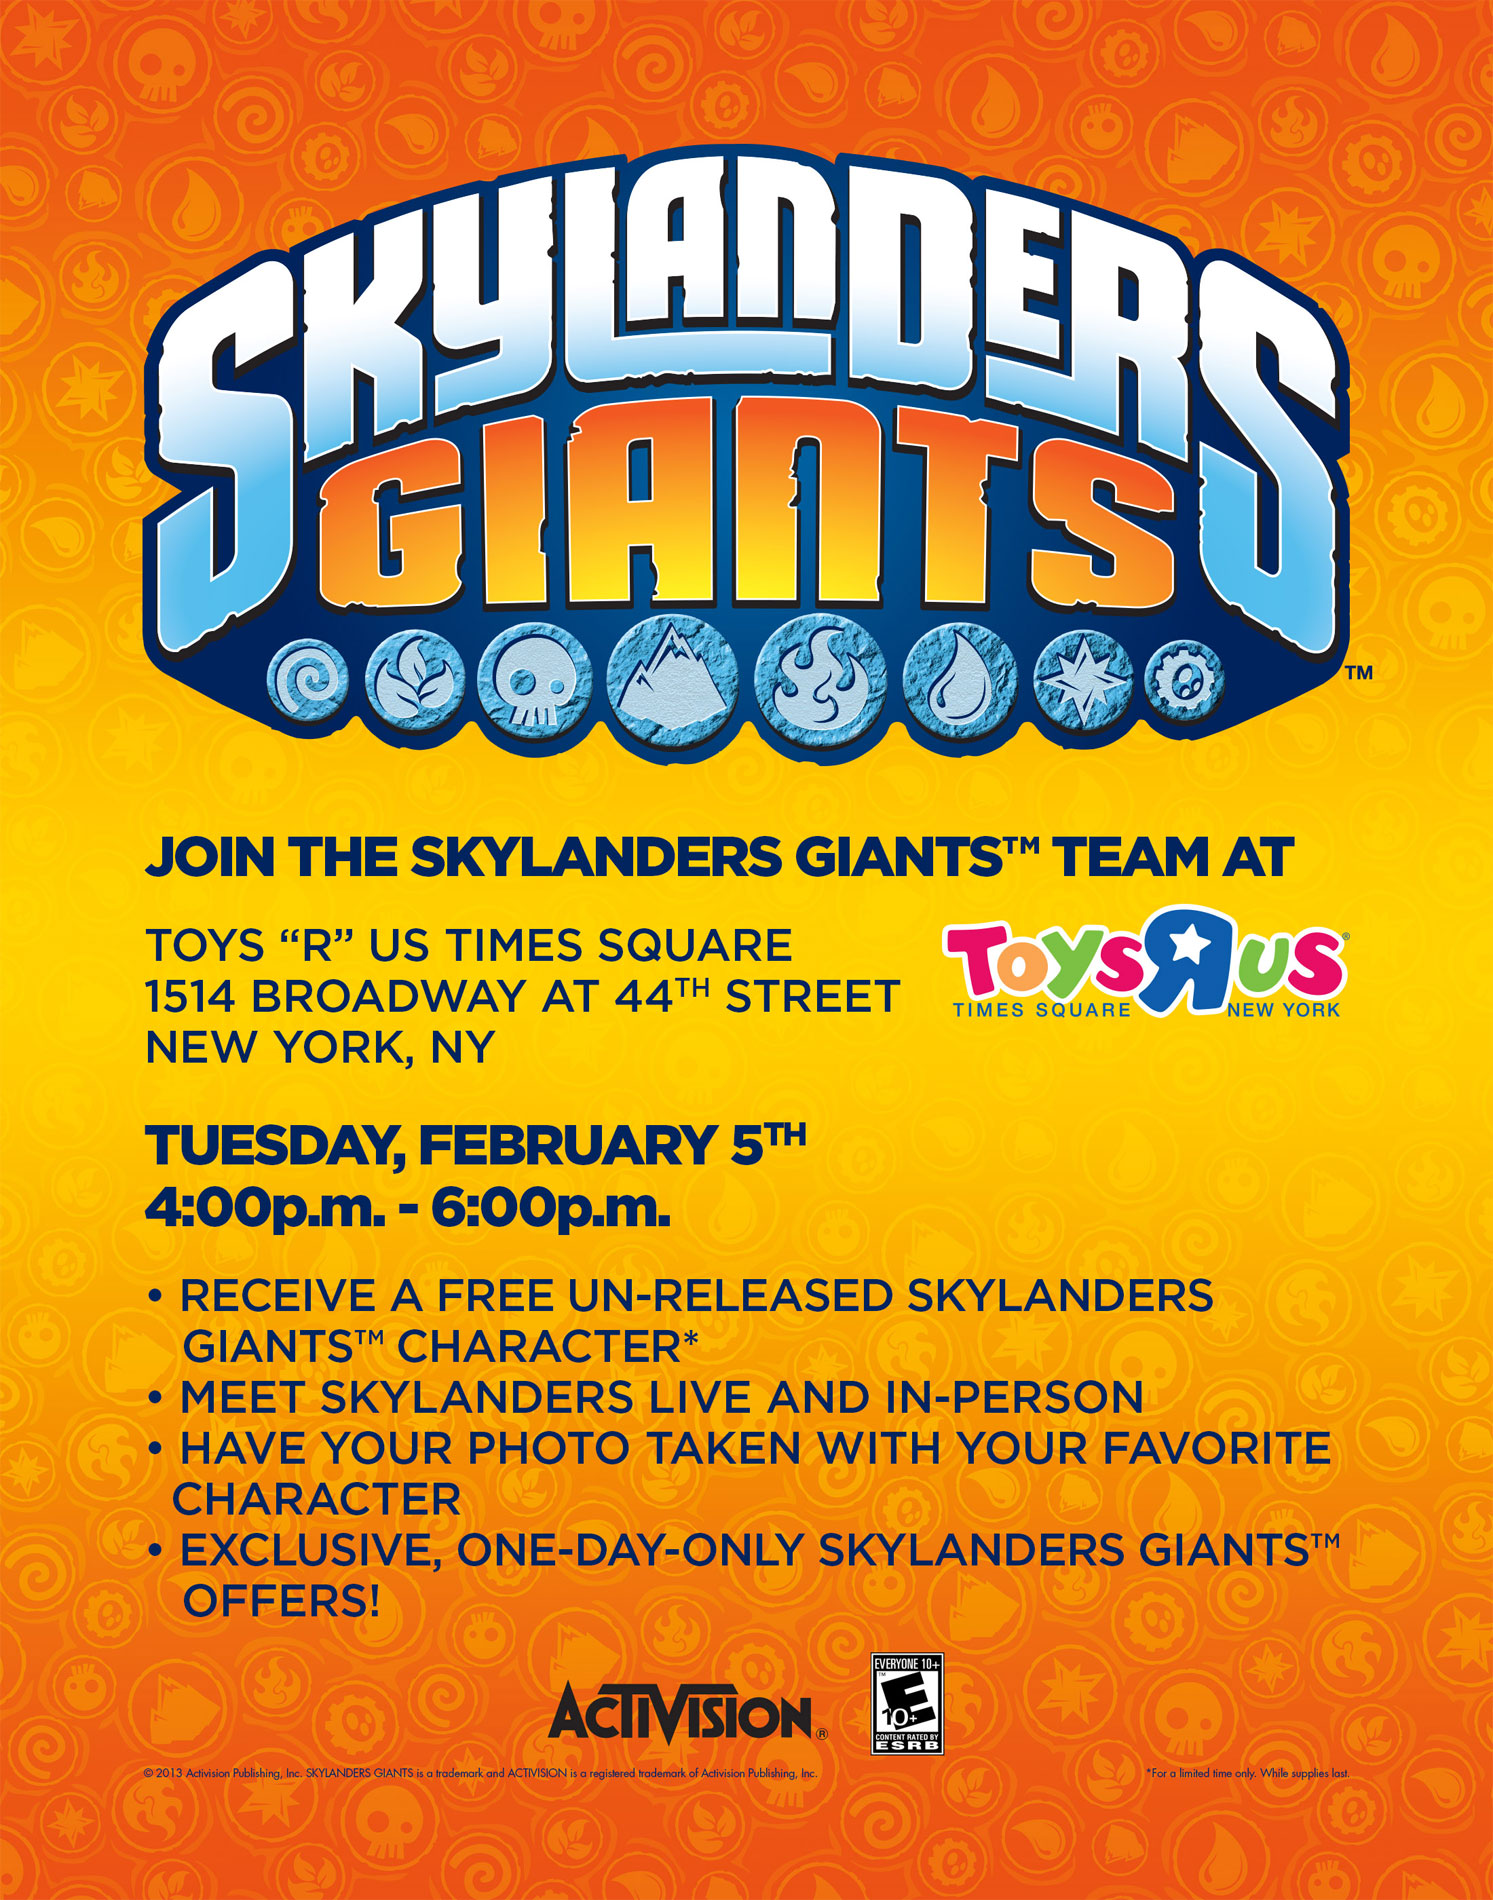 Skylanders Giants Ninjini NYC Toys R Us Promotion to Celebrate Toy Fair 2013